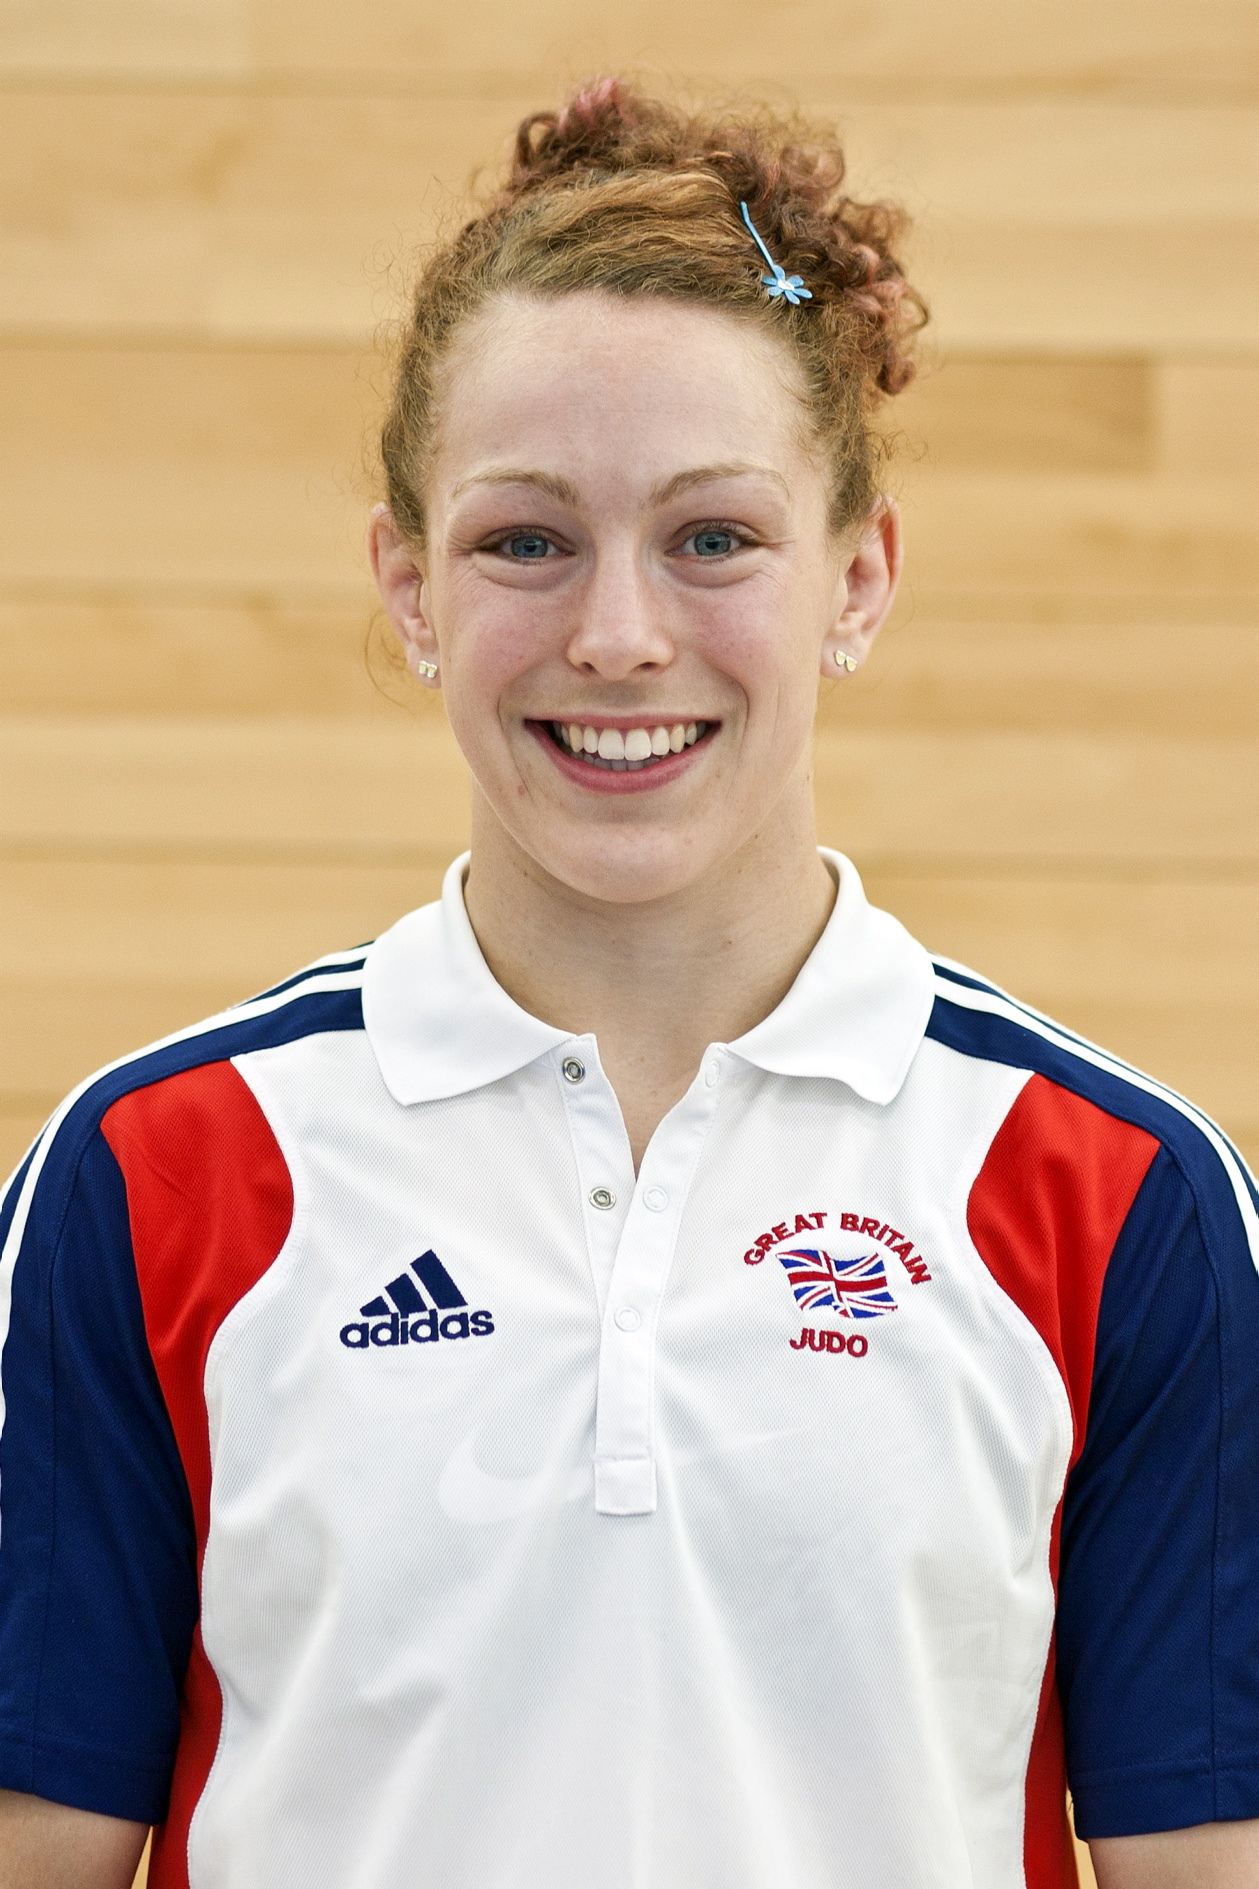 Sally Conway represented Great Britain at the London 2012 Olympics